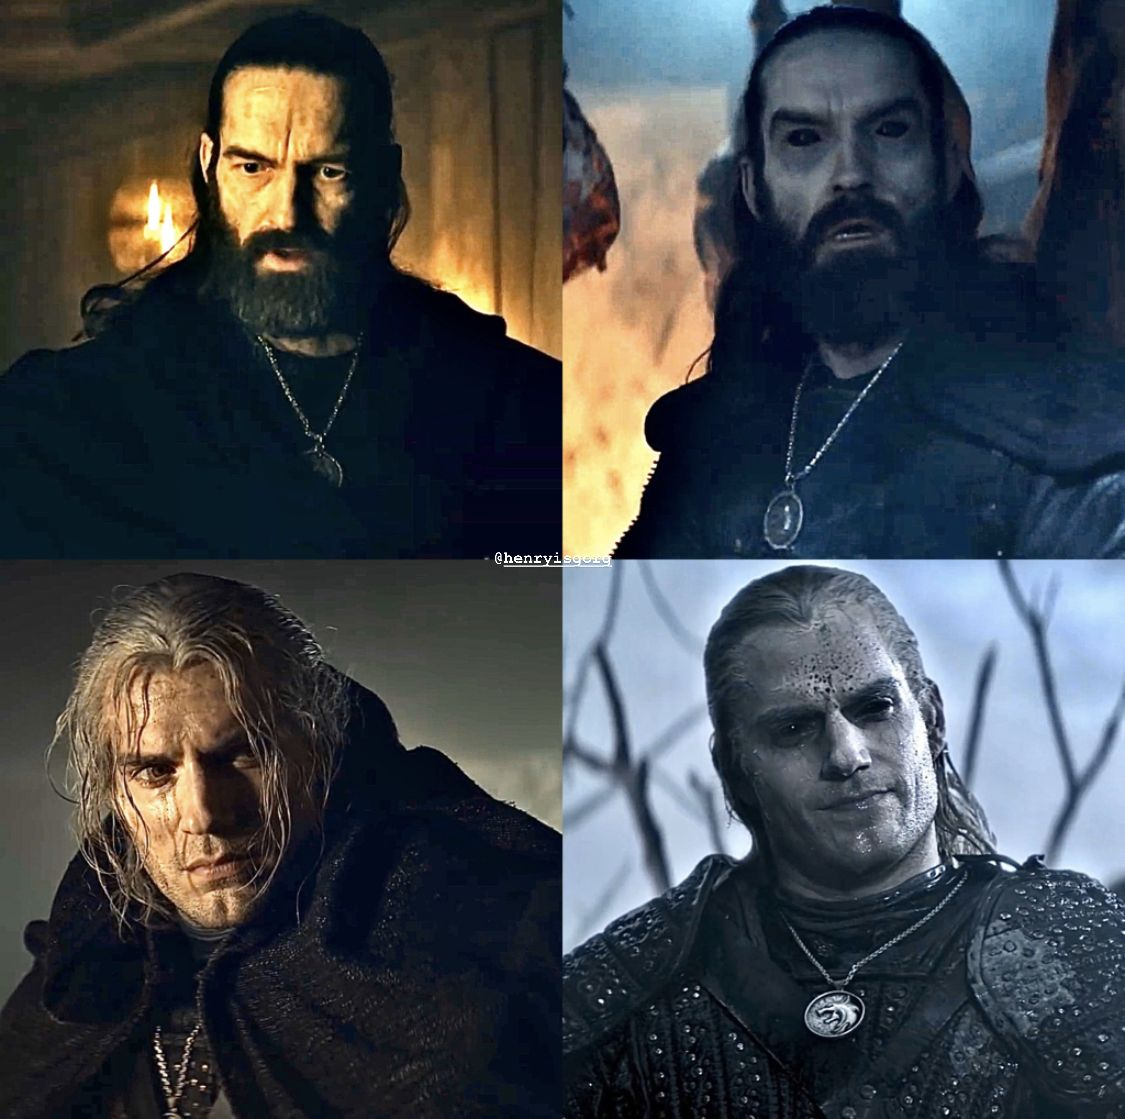 Pin by Vence on Witcher Netflix is AWESOME in 2020